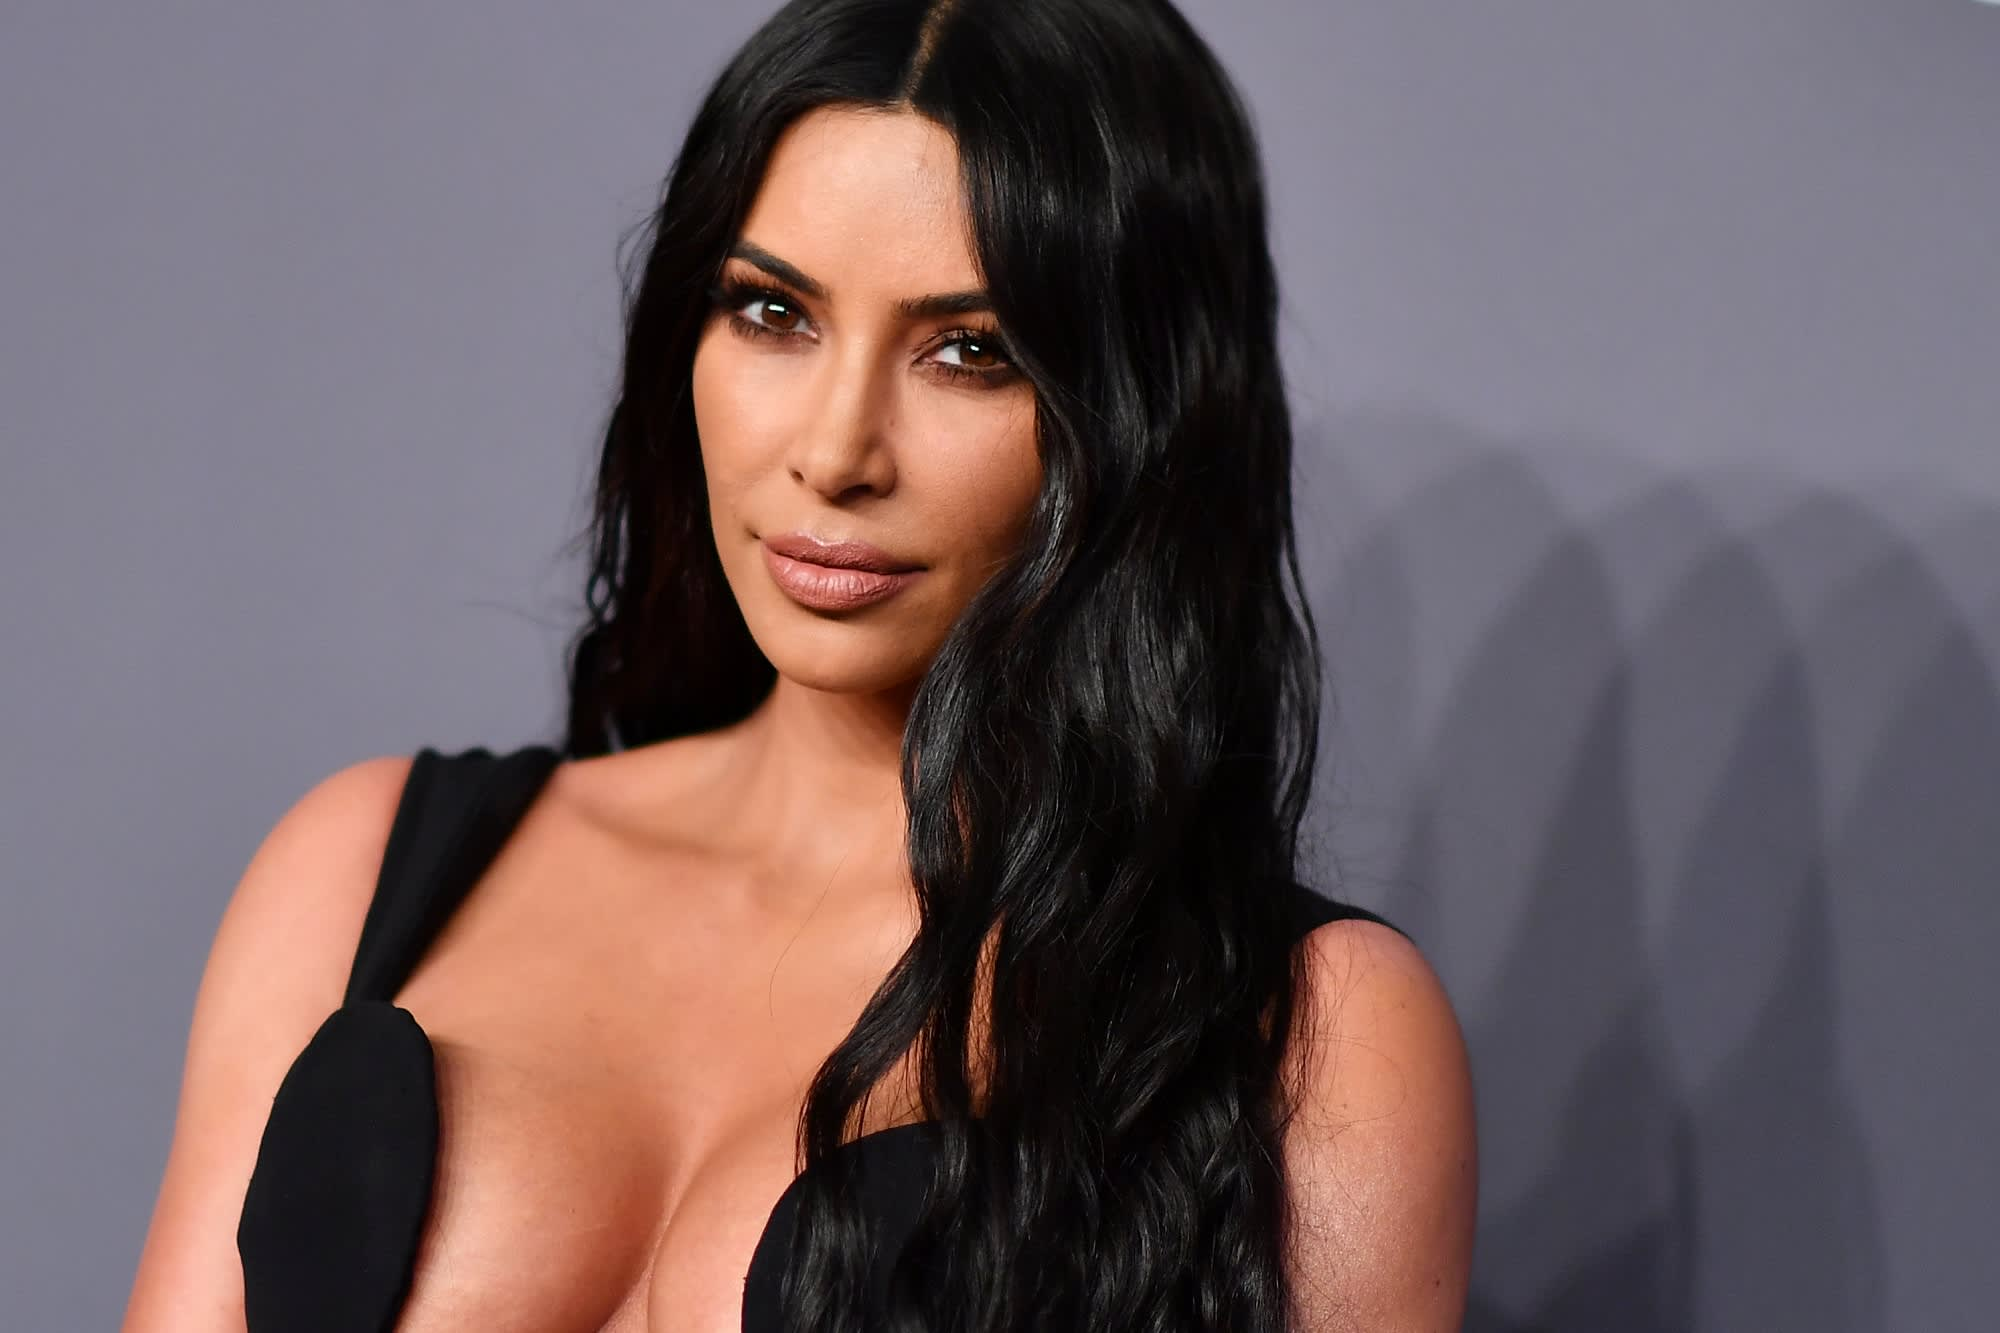 How Kim Kardashian can become a lawyer without getting a law